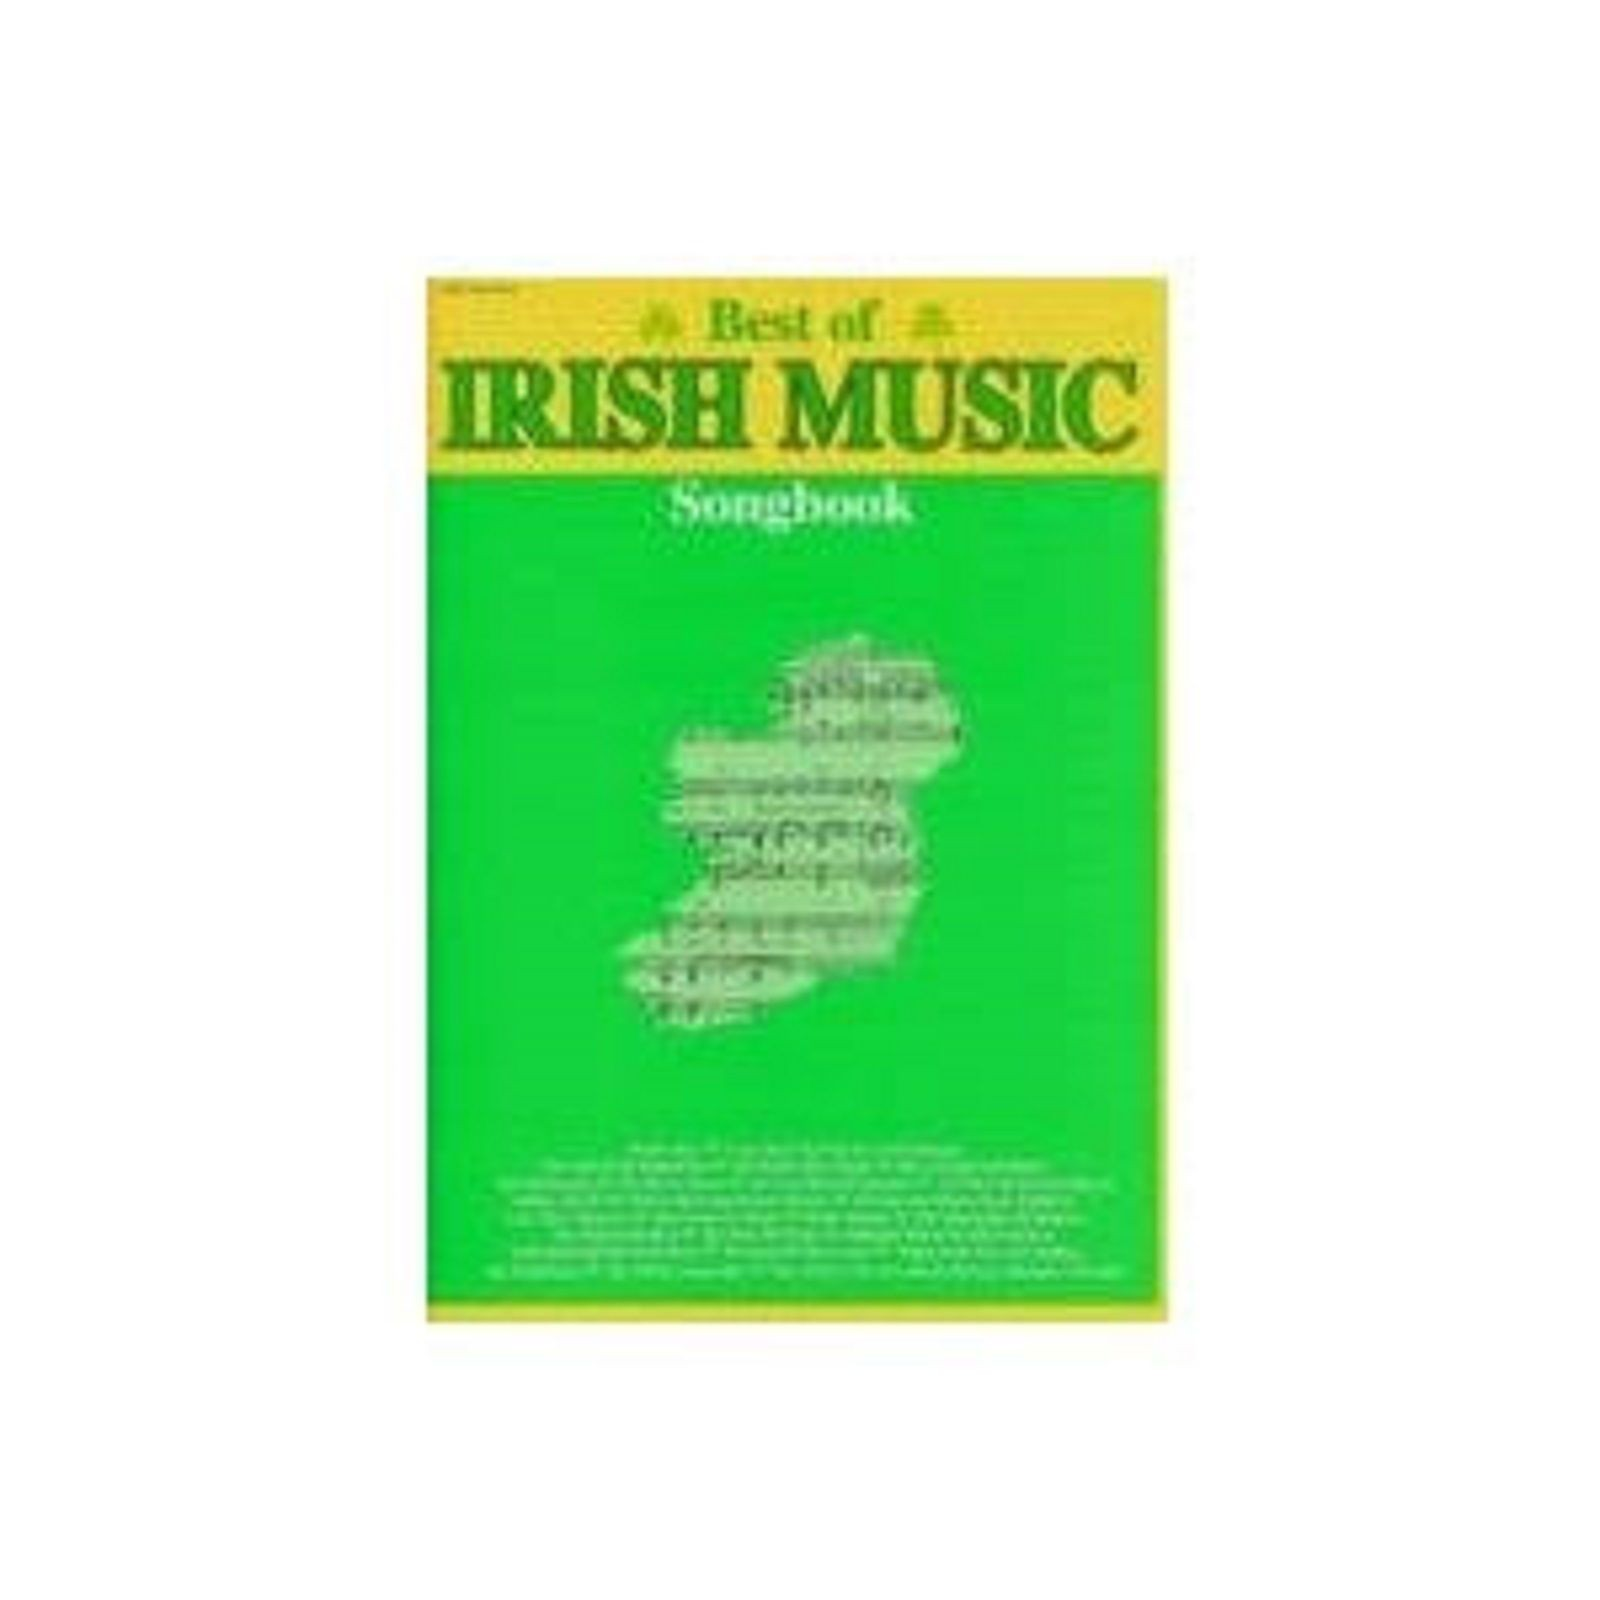 Best Of Irish Music Songbook Sheet Music Piano Vocal Chords Lyrics Book S170